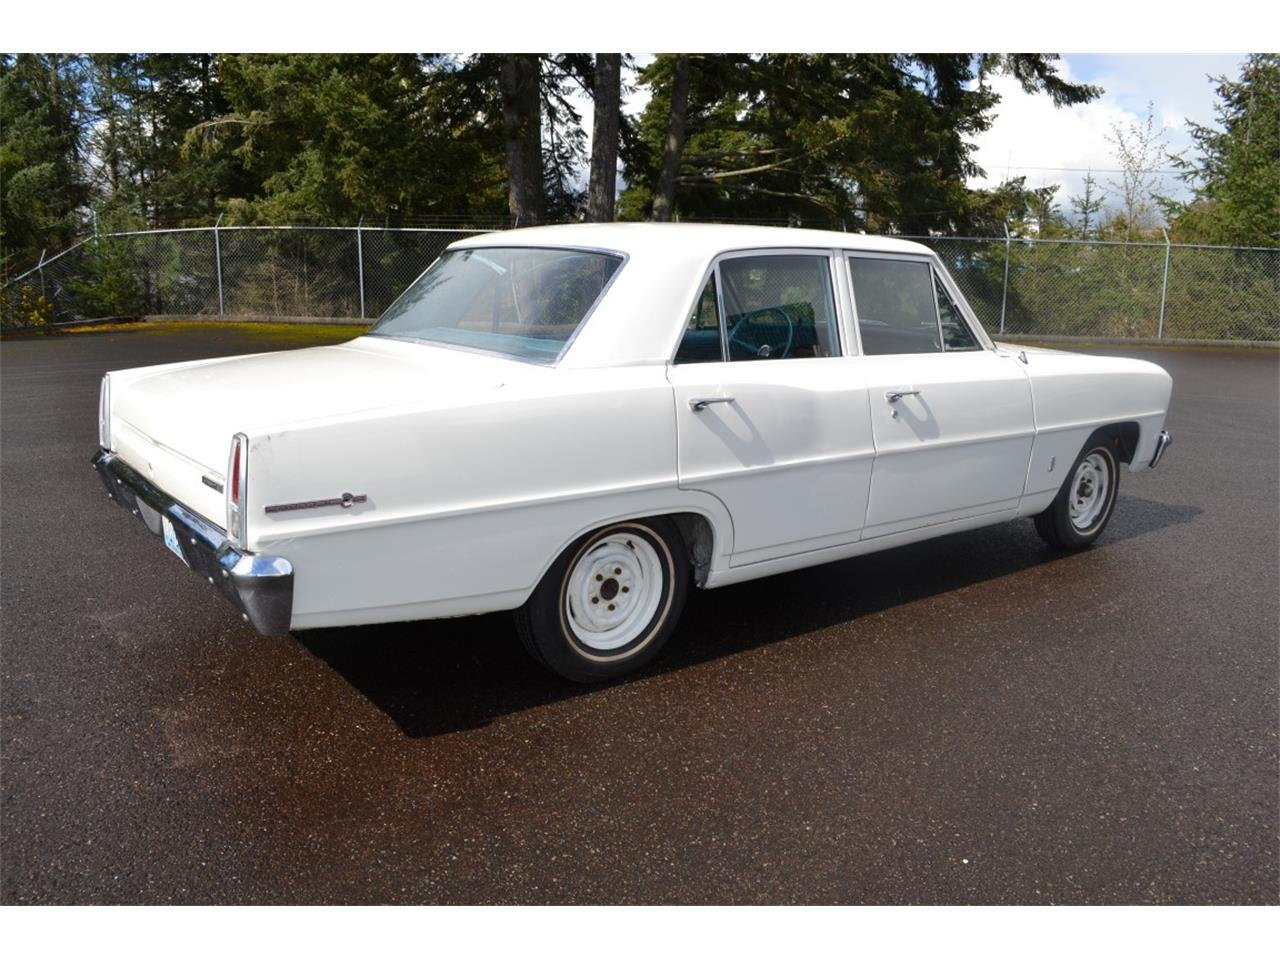 1966 Chevrolet Nova 4 Door For Sale Classiccars Com Cc 982669